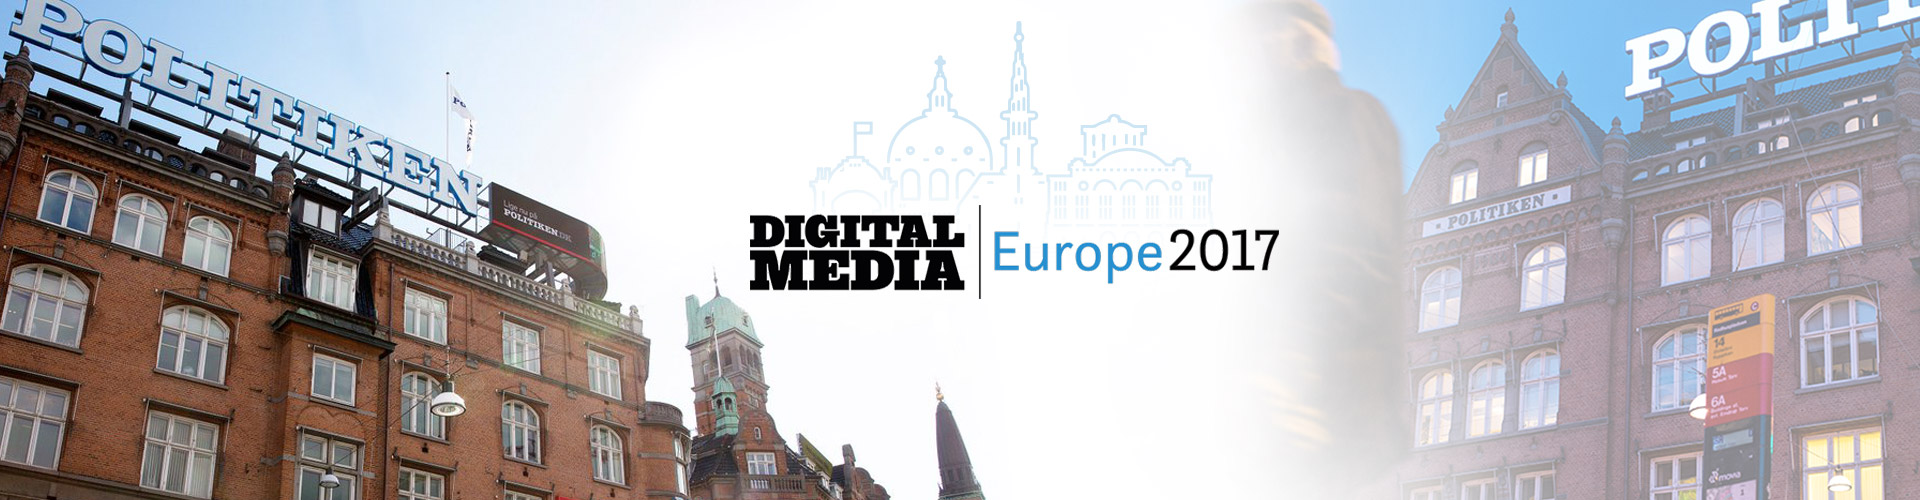 Digital Media Europe 2017 Round-up